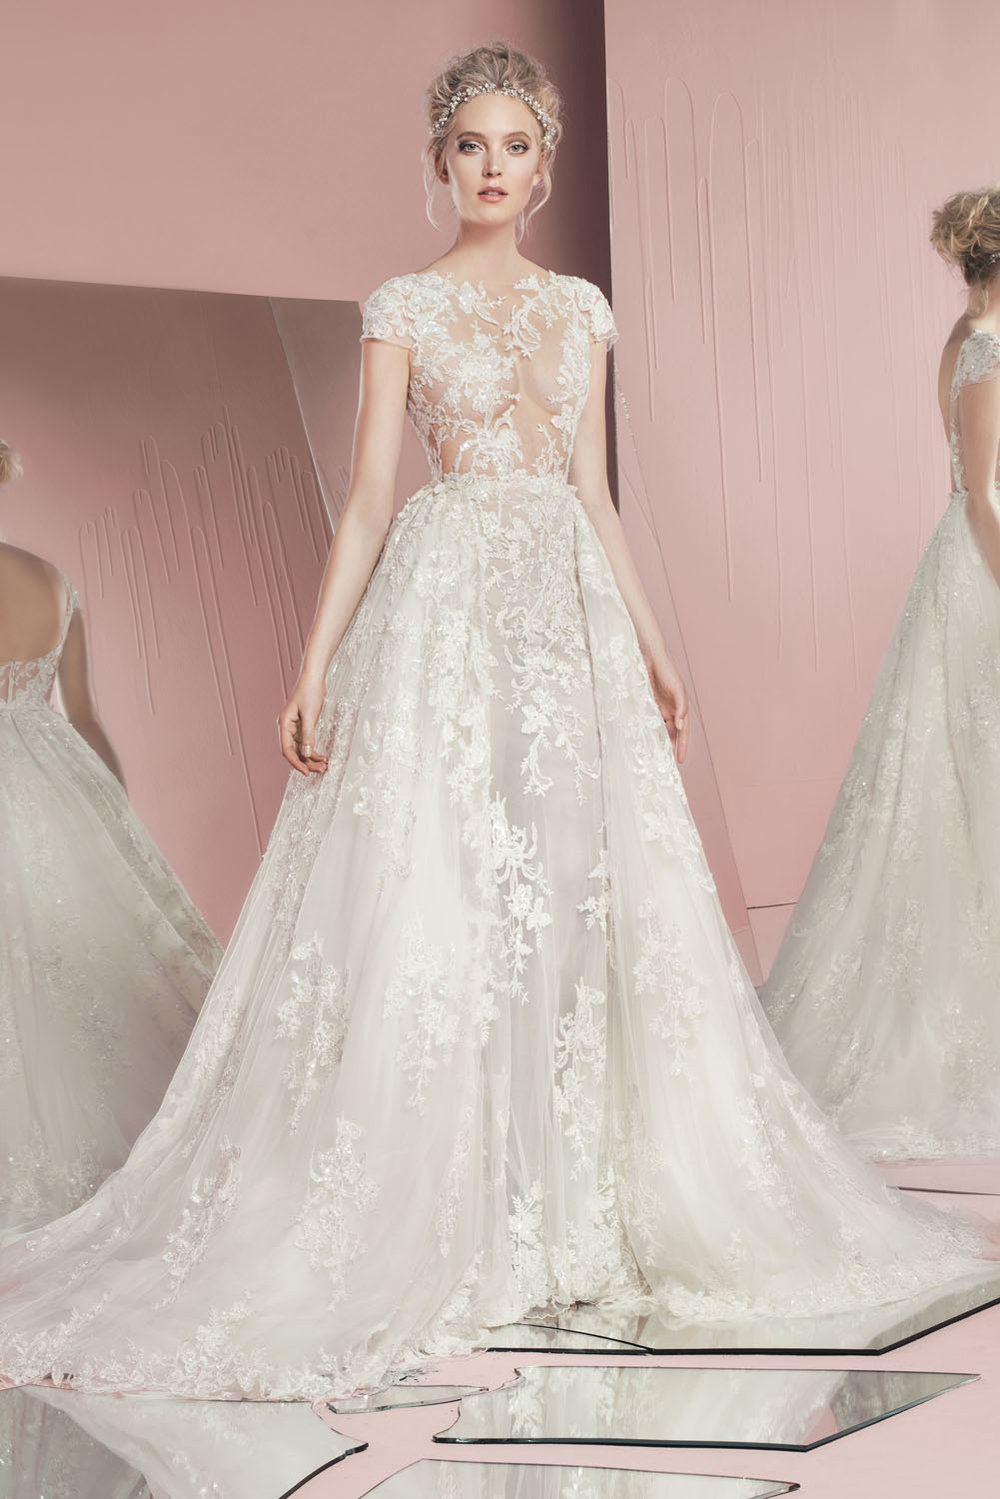 zuhair-murad-perla-beaded-lace-and-illusion-sheath-wedding-dress-with-cap-sleeves-and-removable-train-romantic-timeless-weddings-dimitras-bridal-couture.jpg